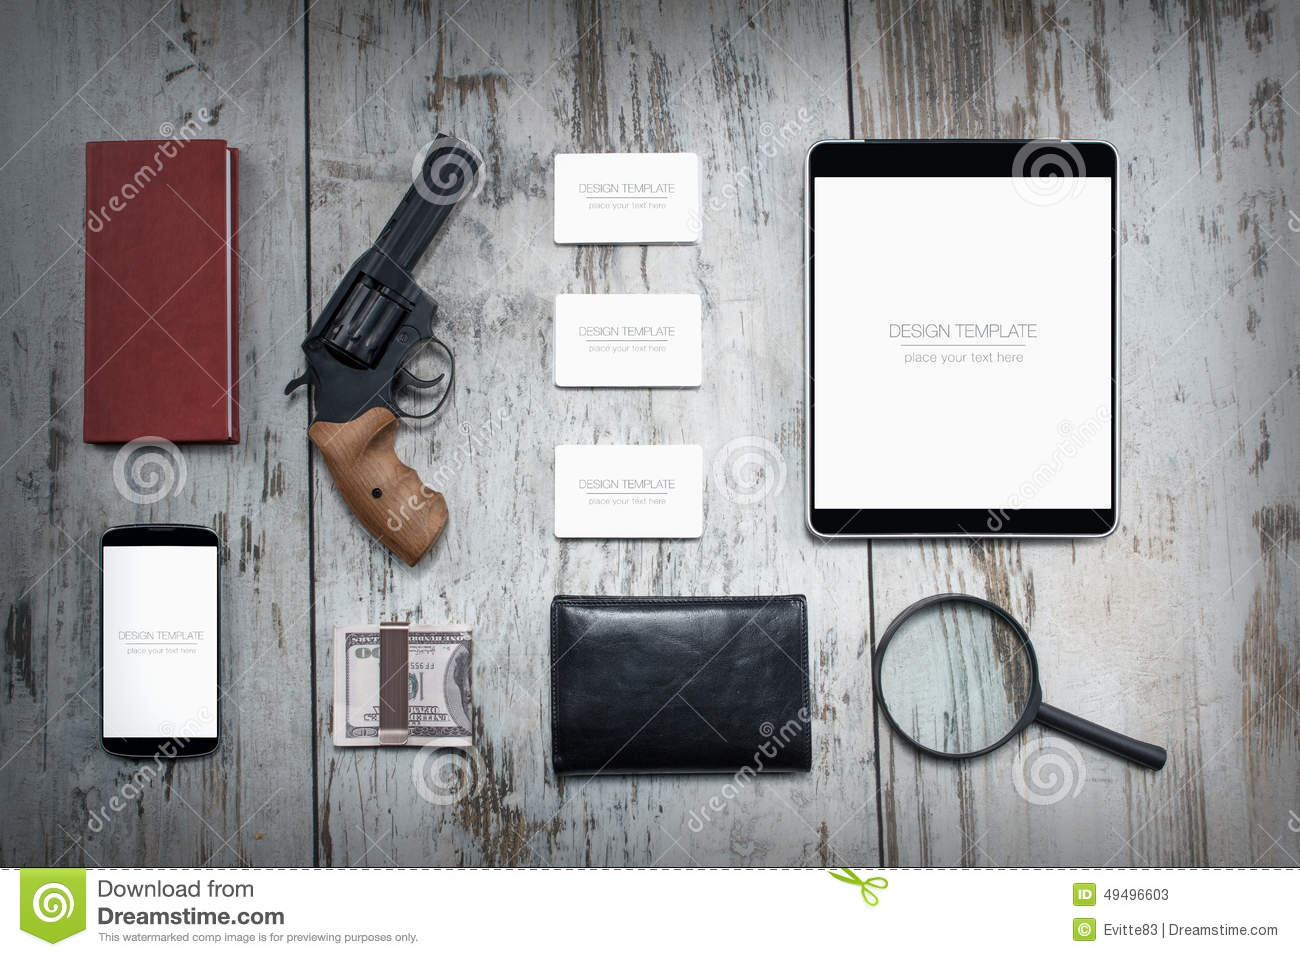 mockup business template. detective agency stock image - image, Presentation templates